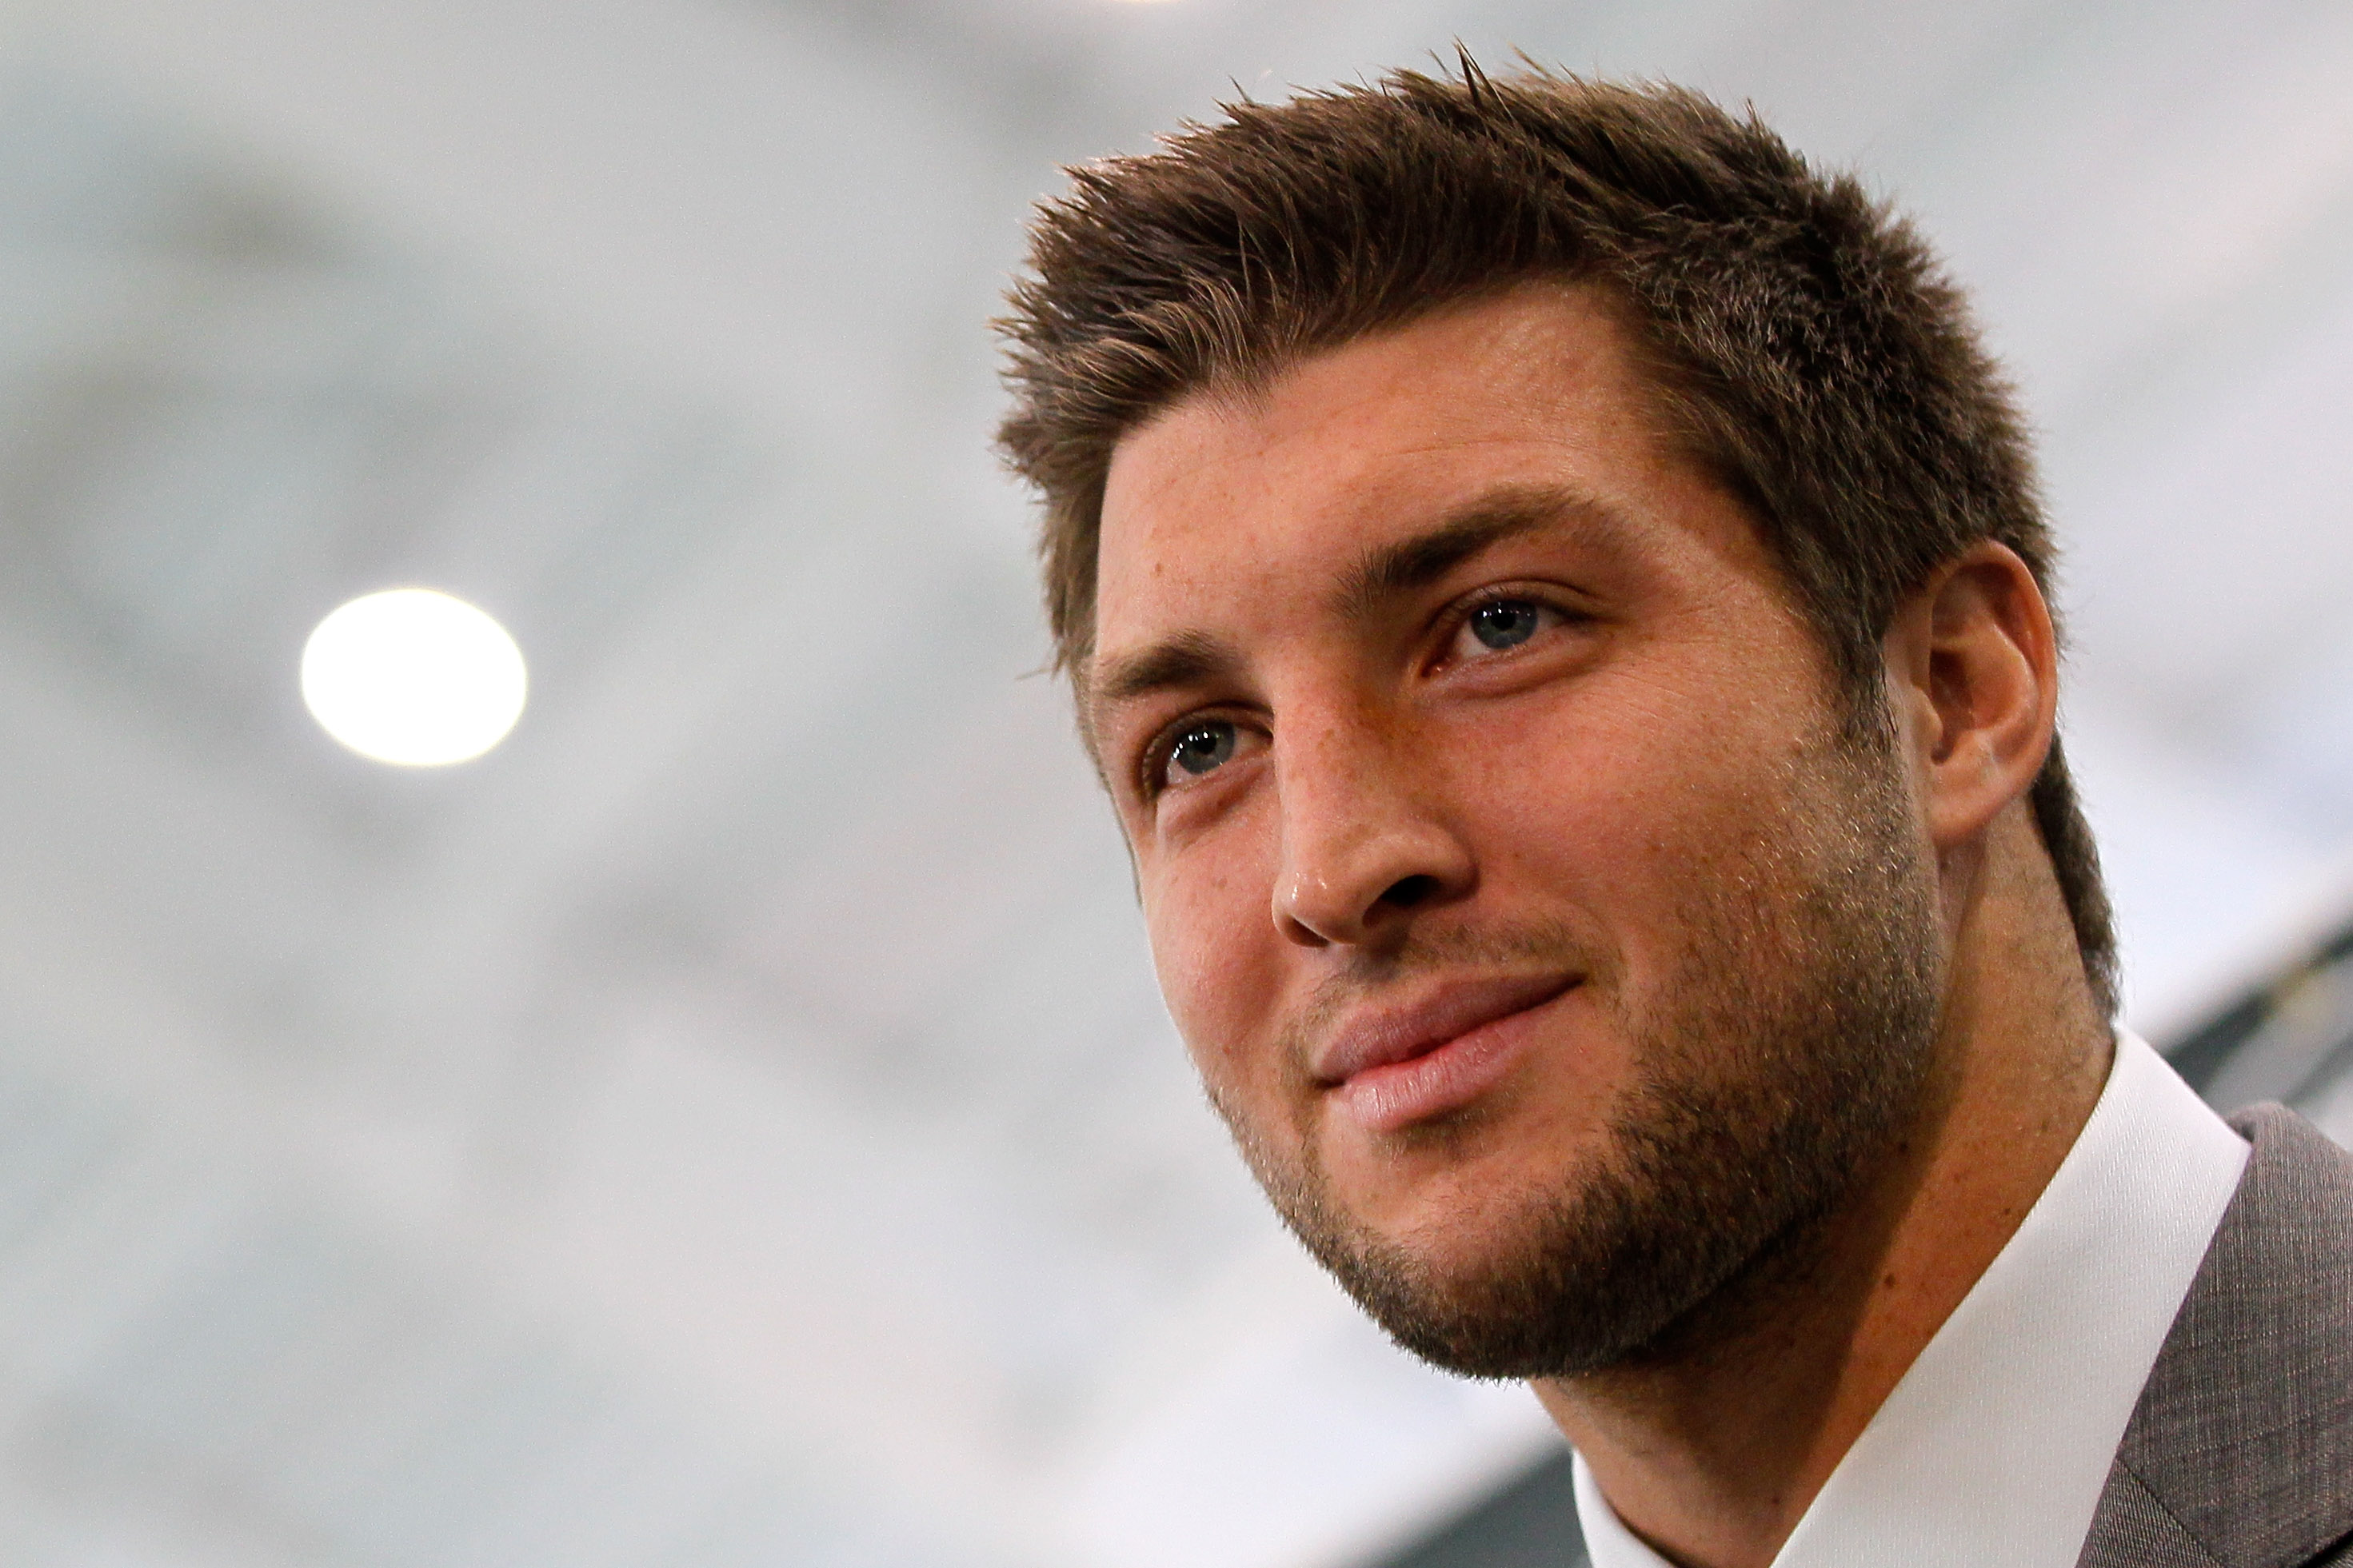 Tim Tebow looks on during a media interview